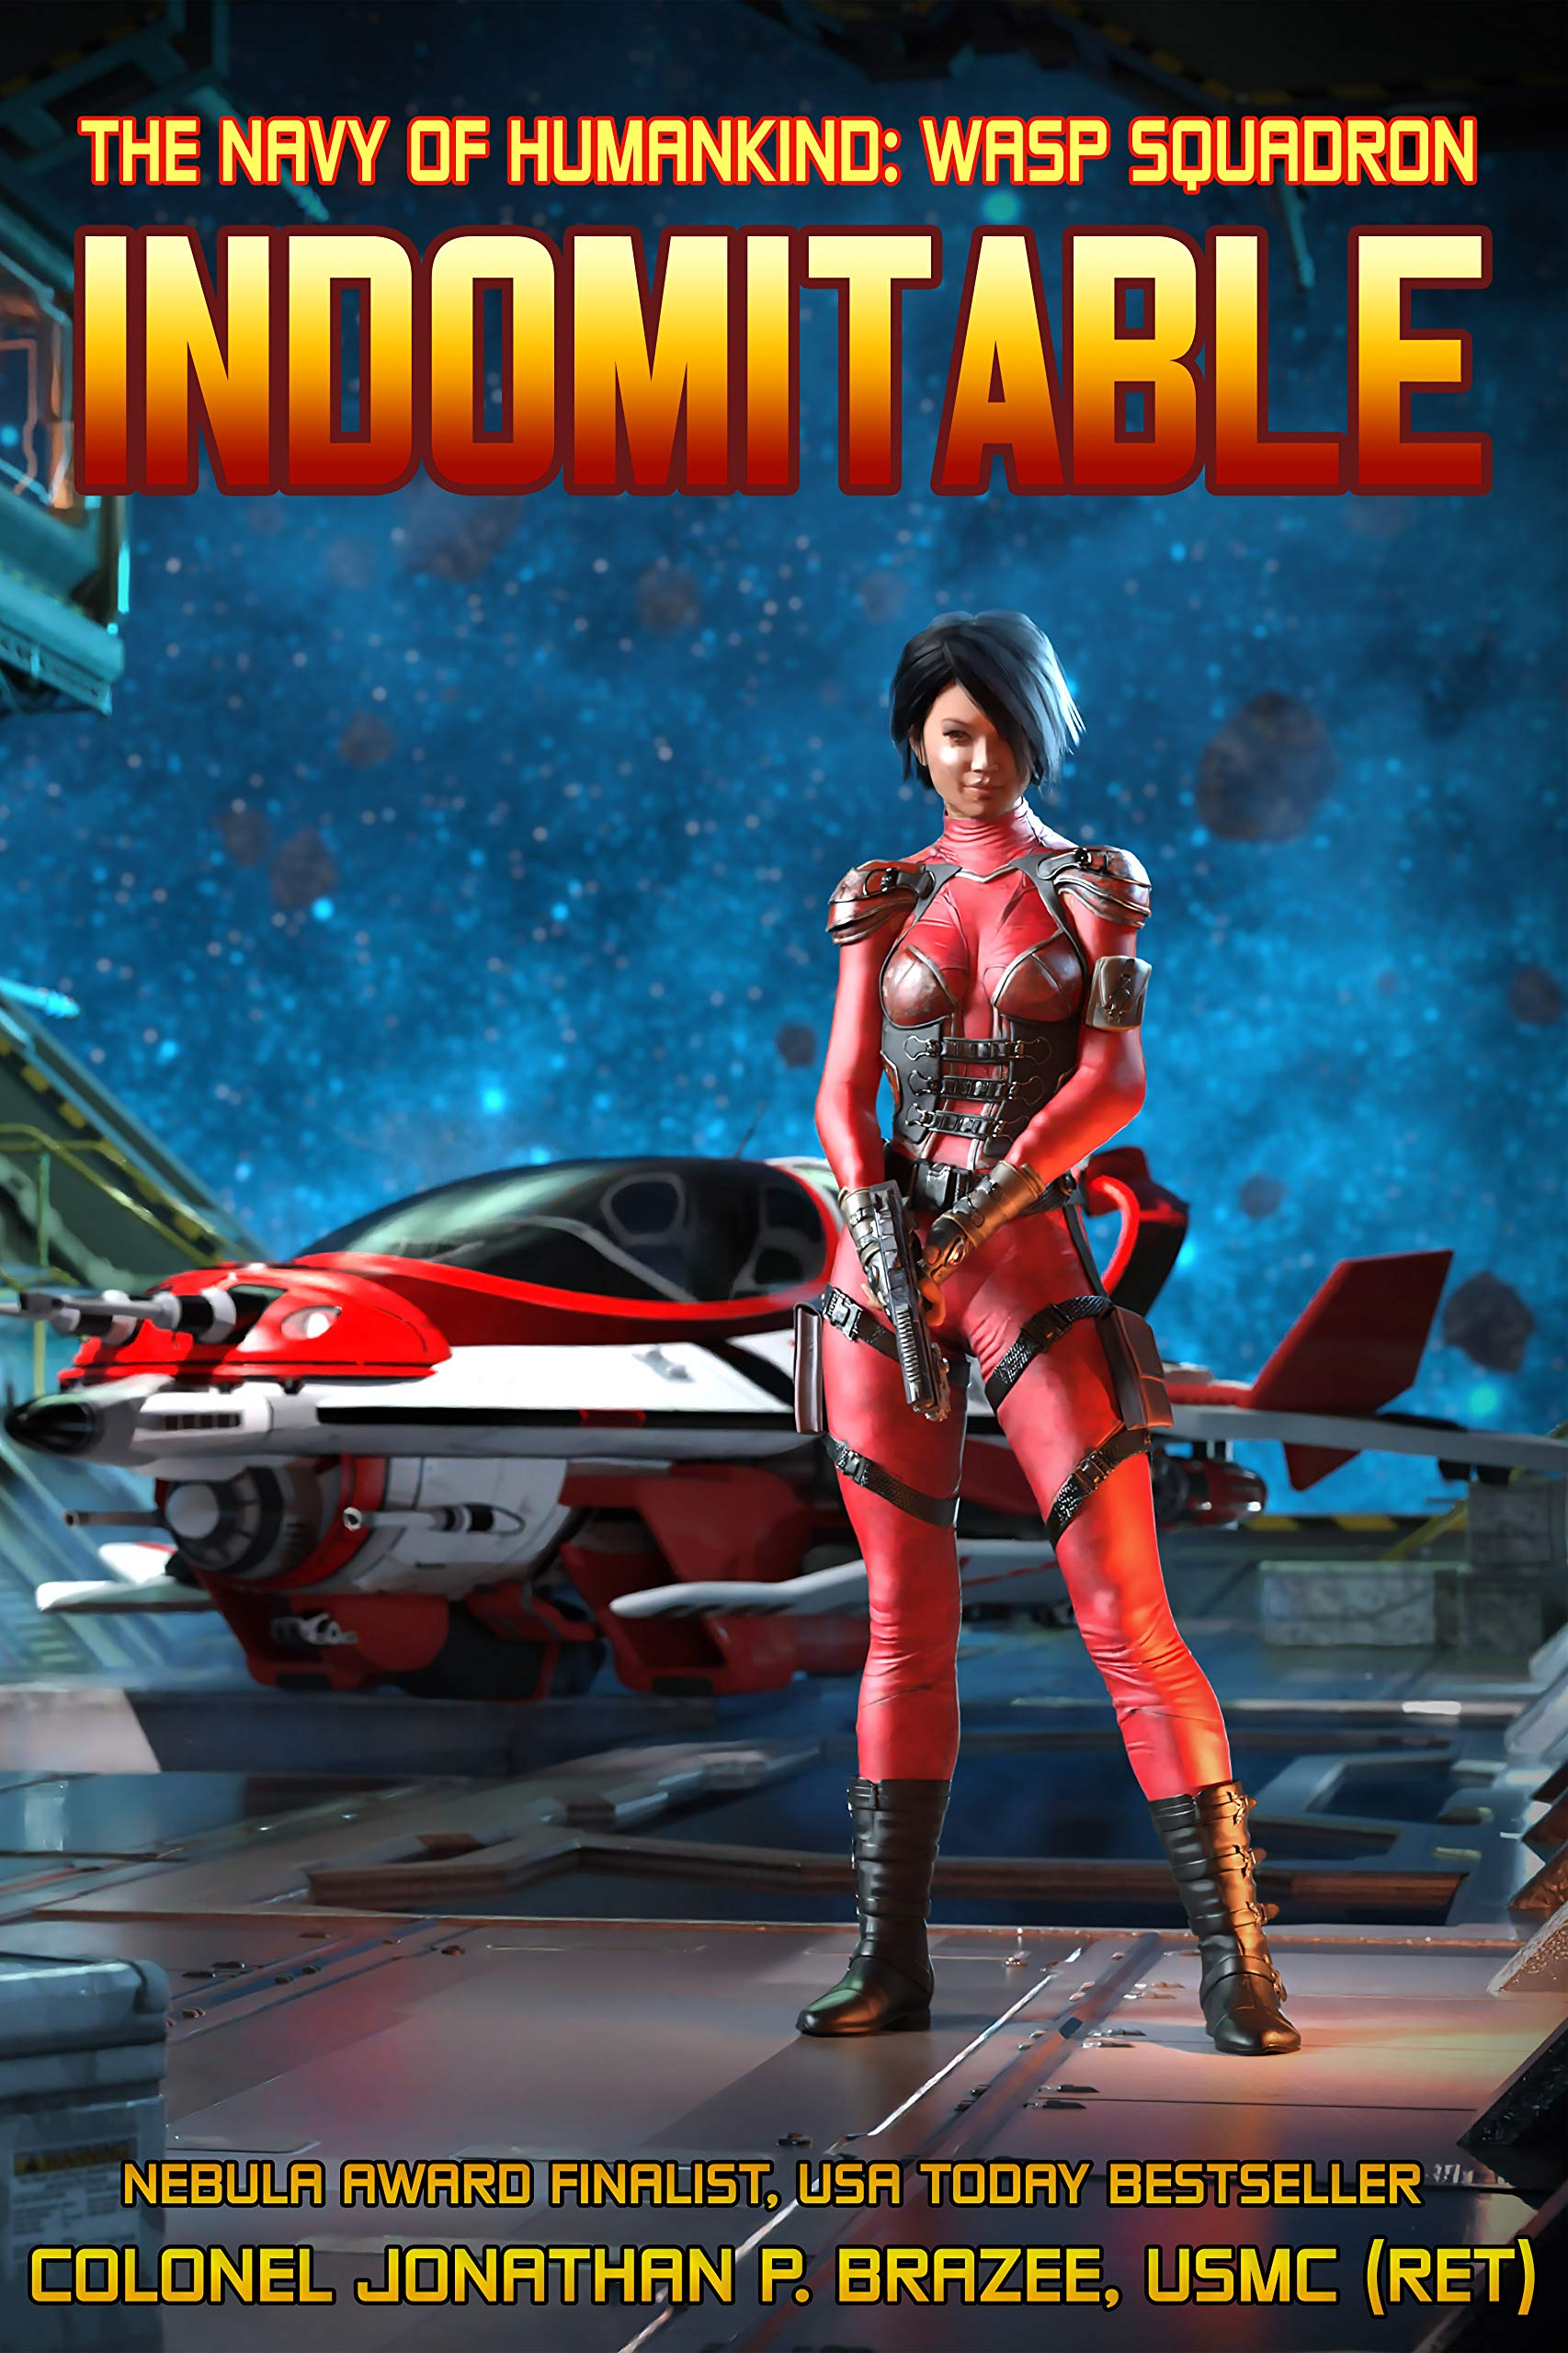 Indomitable (The Navy of Humankind: Wasp Squadron Book 5)